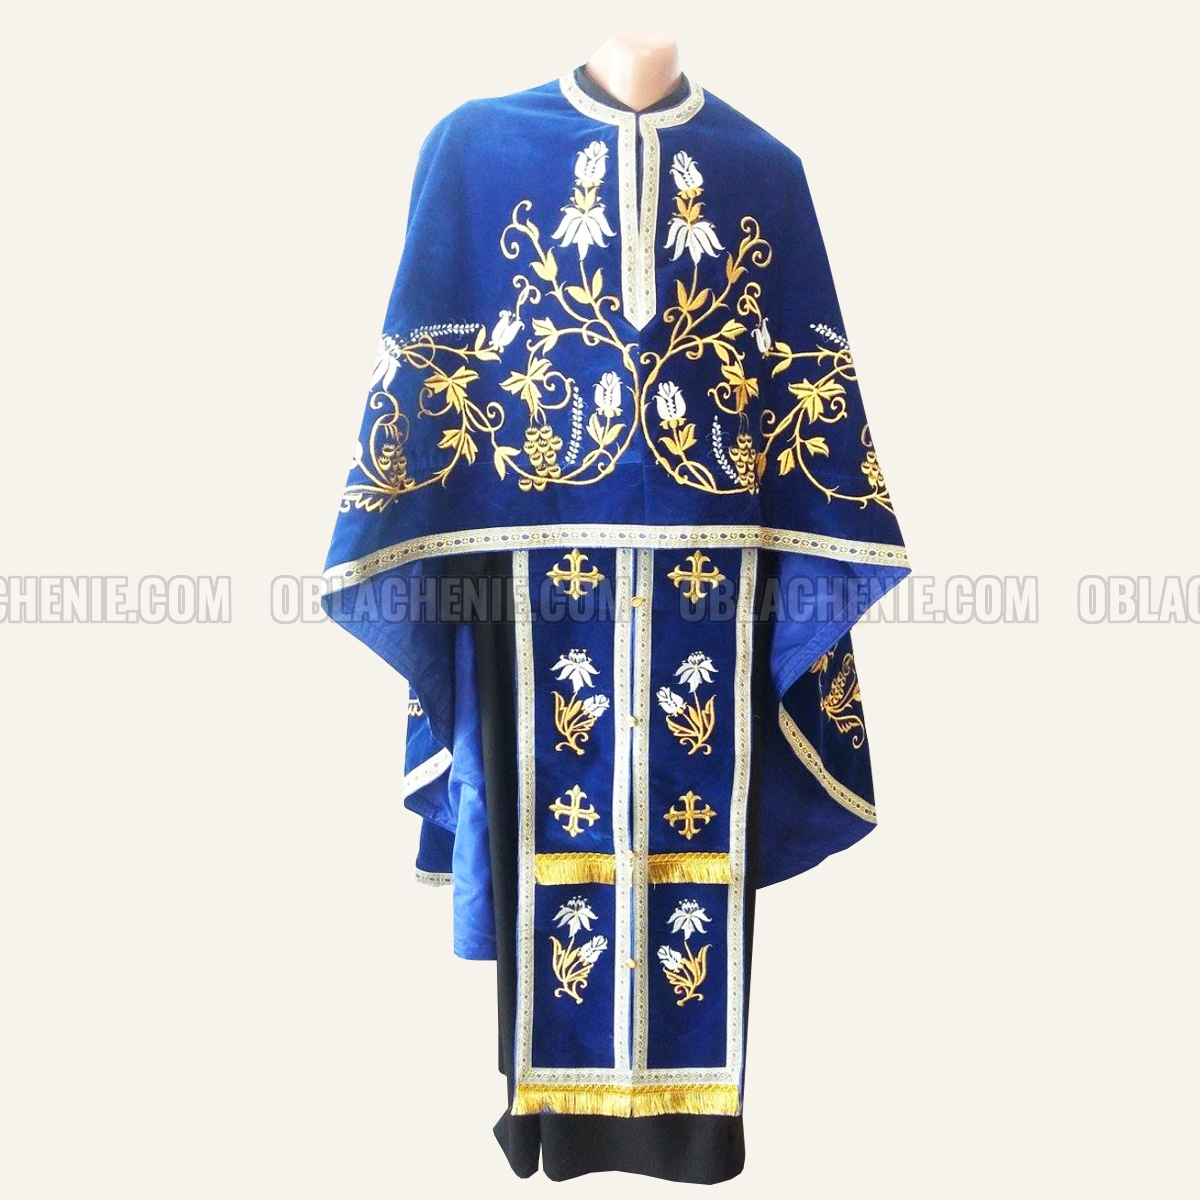 Embroidered priest's vestments 10232